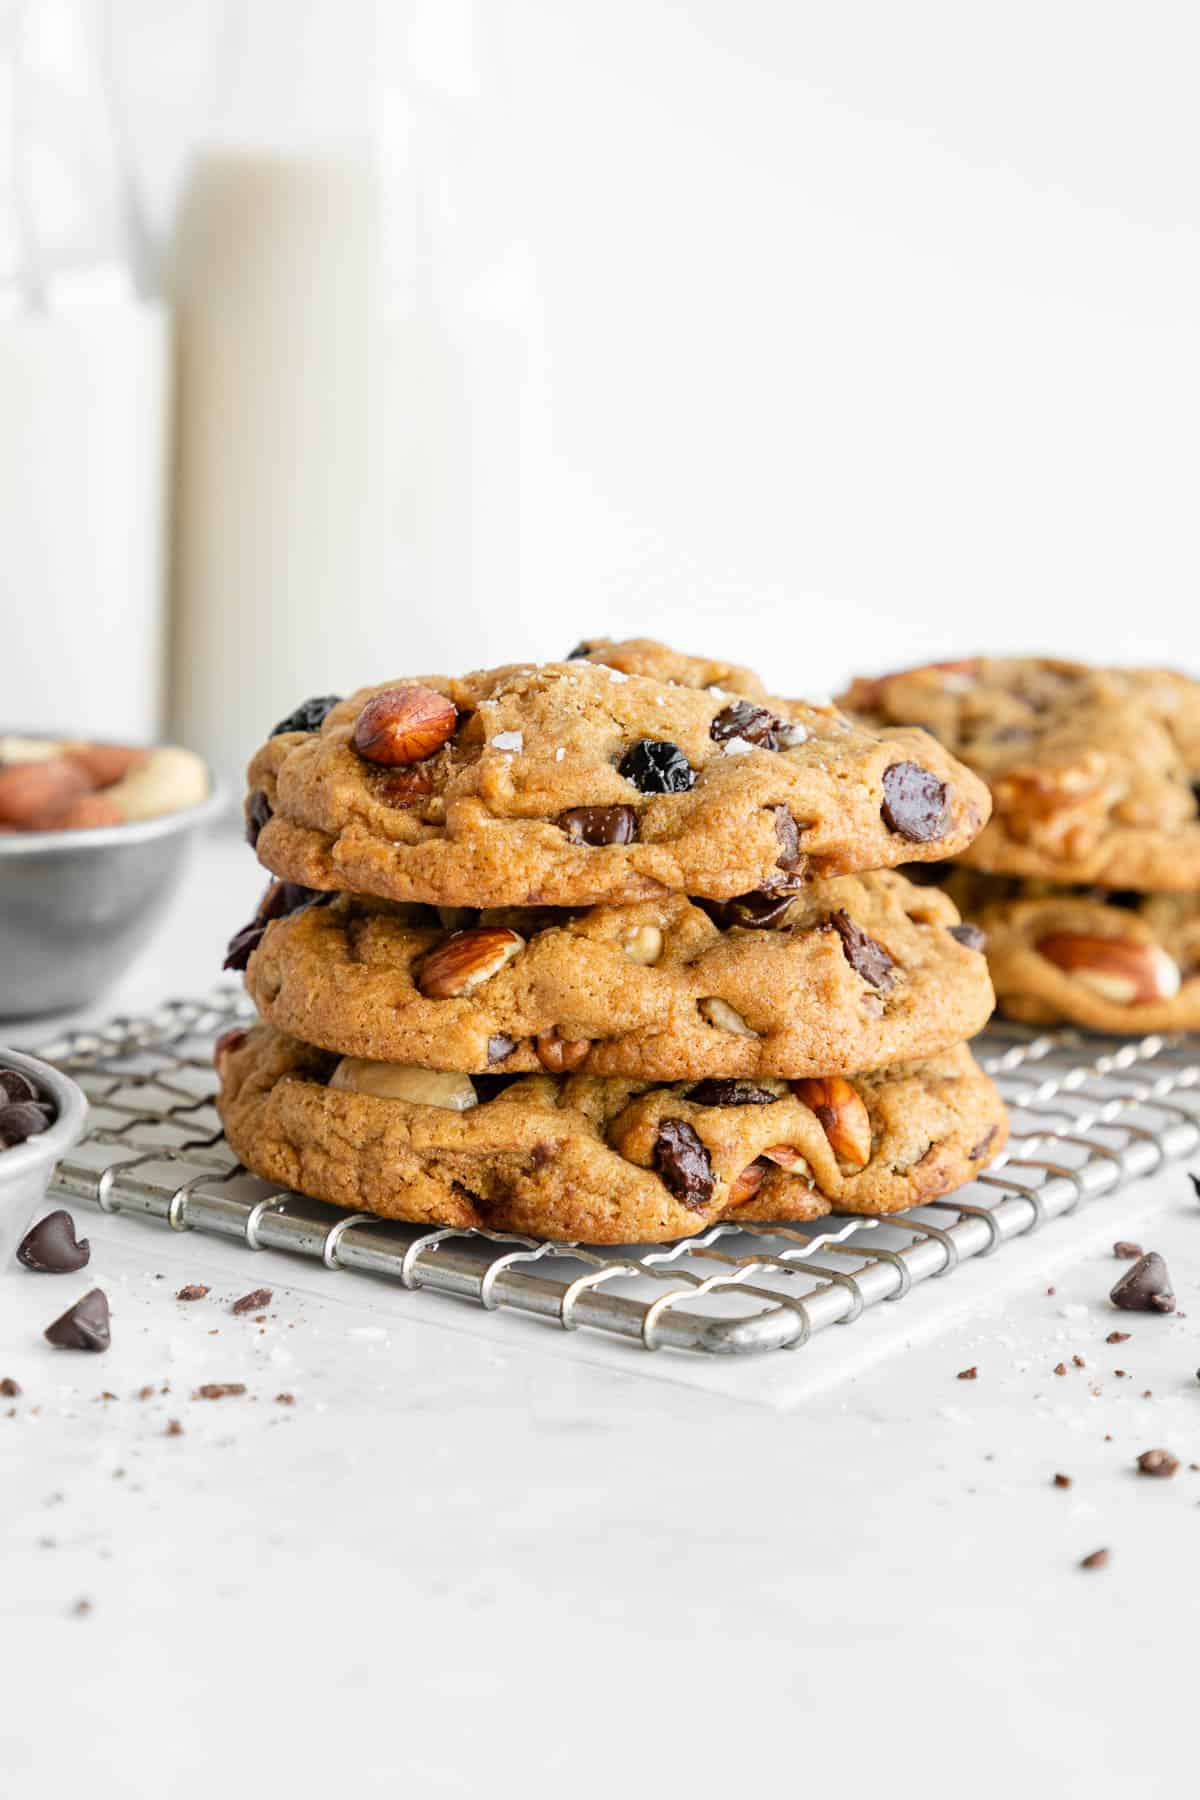 a stack of vegan trail mix cookies with chocolate chips, mixed nuts, and dried fruit